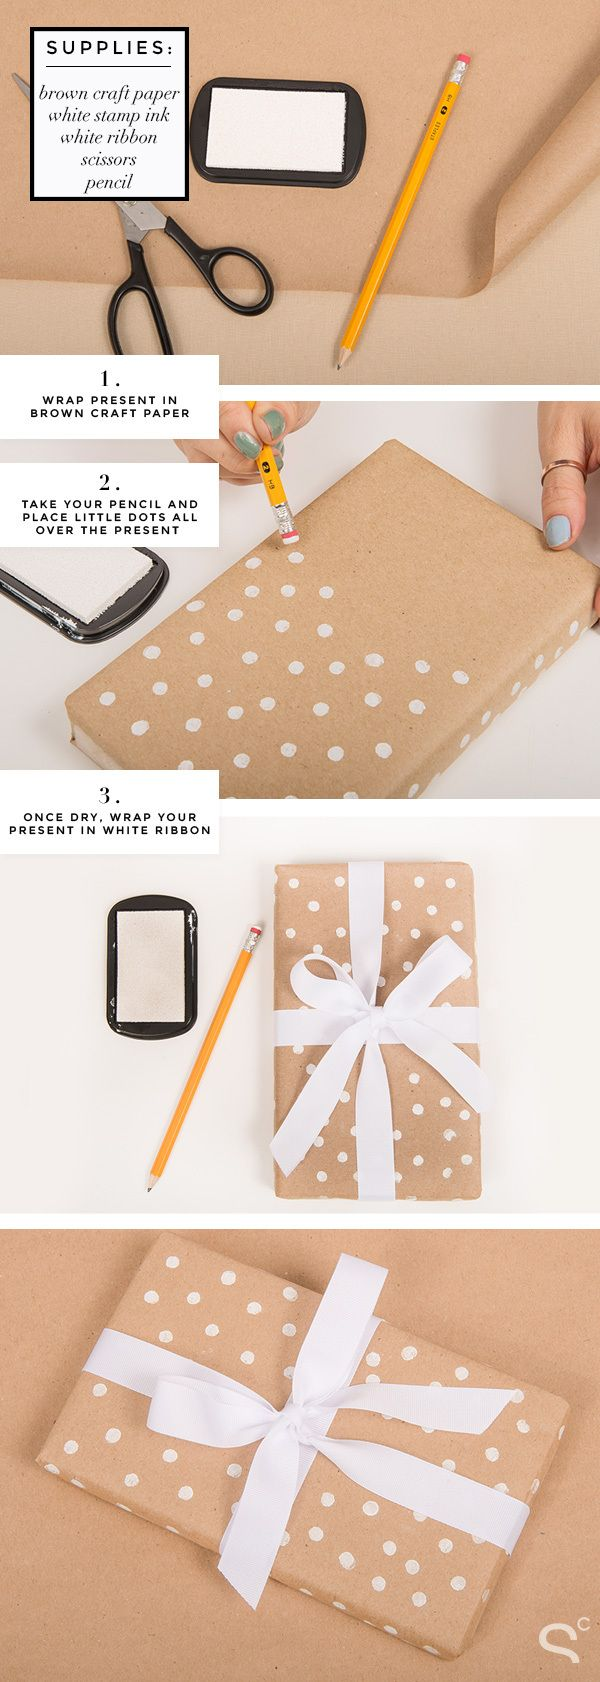 Easy DIY Polka Dot Wrapping Paper! | StyleCaster, 7 Days of Gift Wrapping Ideas | More ideas here: http://stylecaster.com/tag/gift-wrapping-ideas/